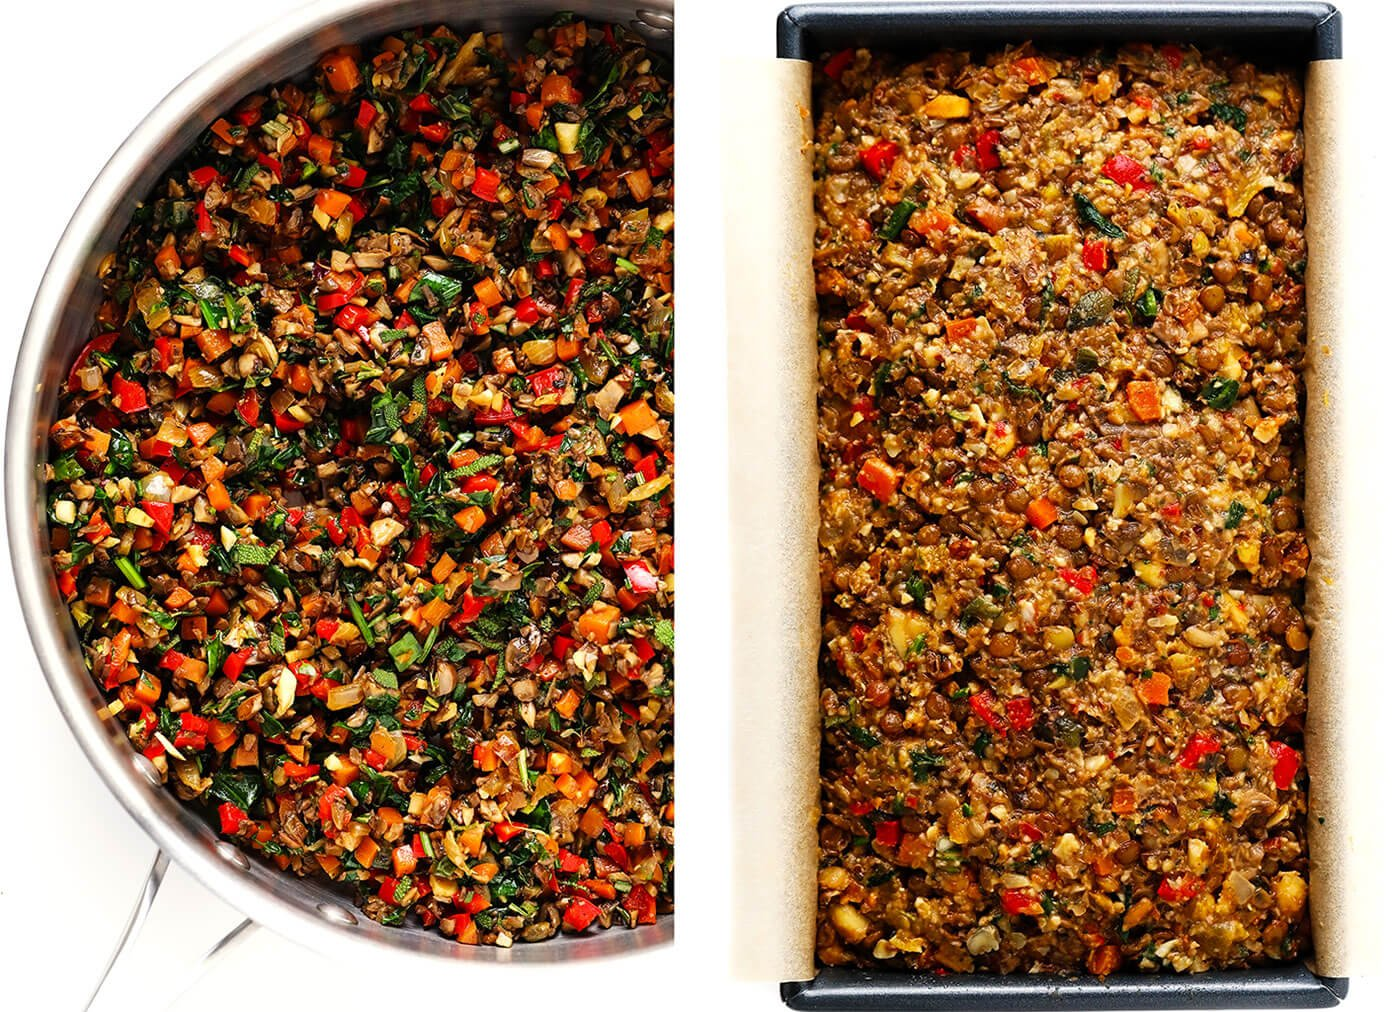 How To Make Nut Roast -- Sauteing the Veggies and Pressing Them Into a Bread Pan